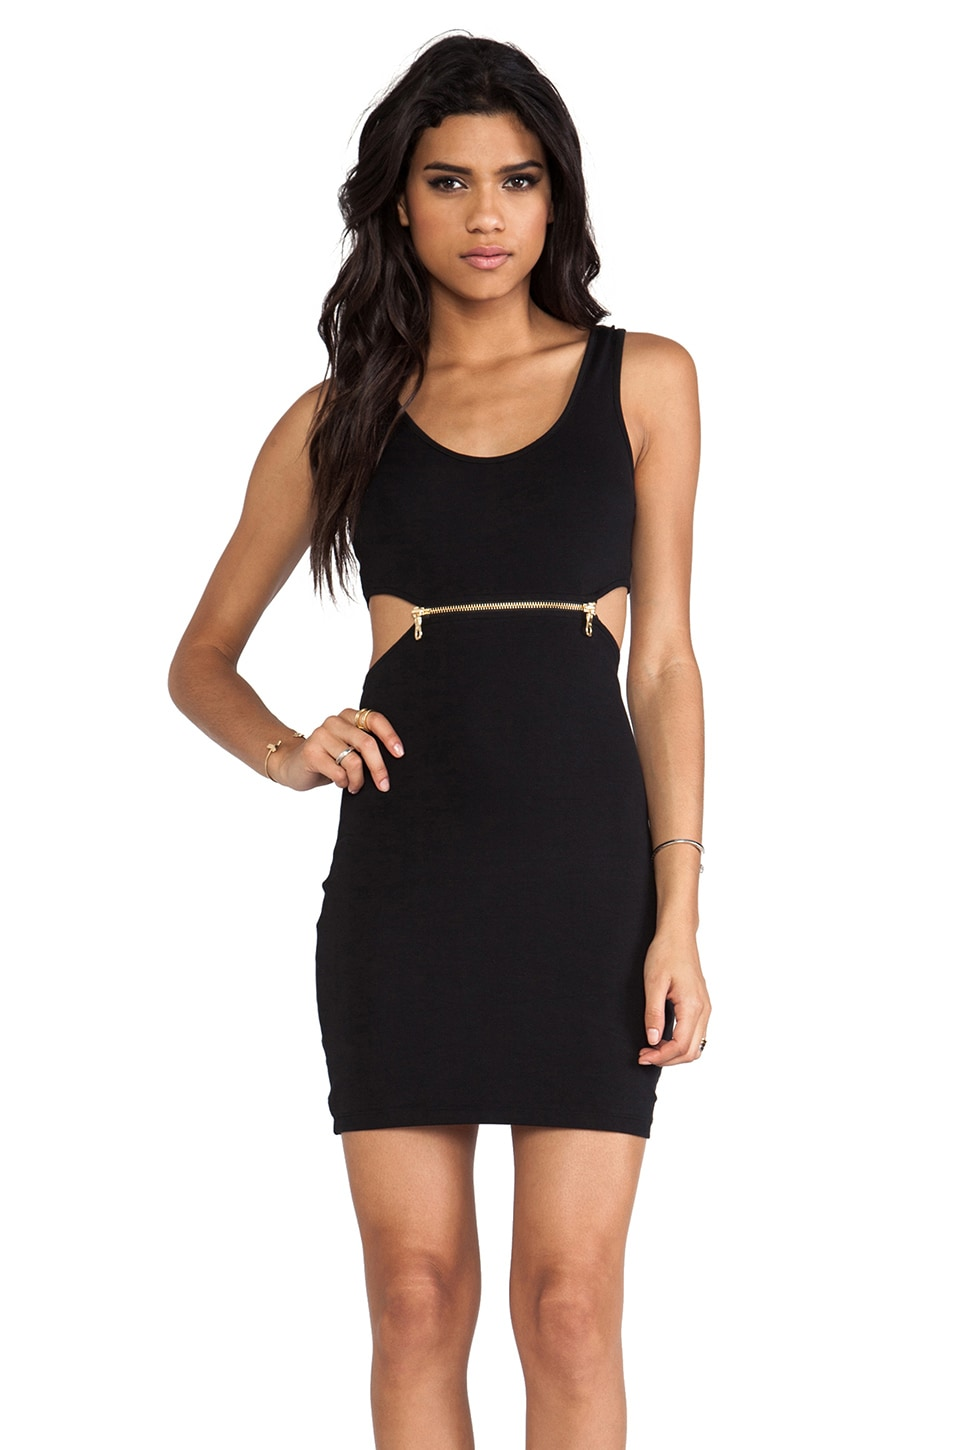 Bardot Zipper Cut Out Dress in Black